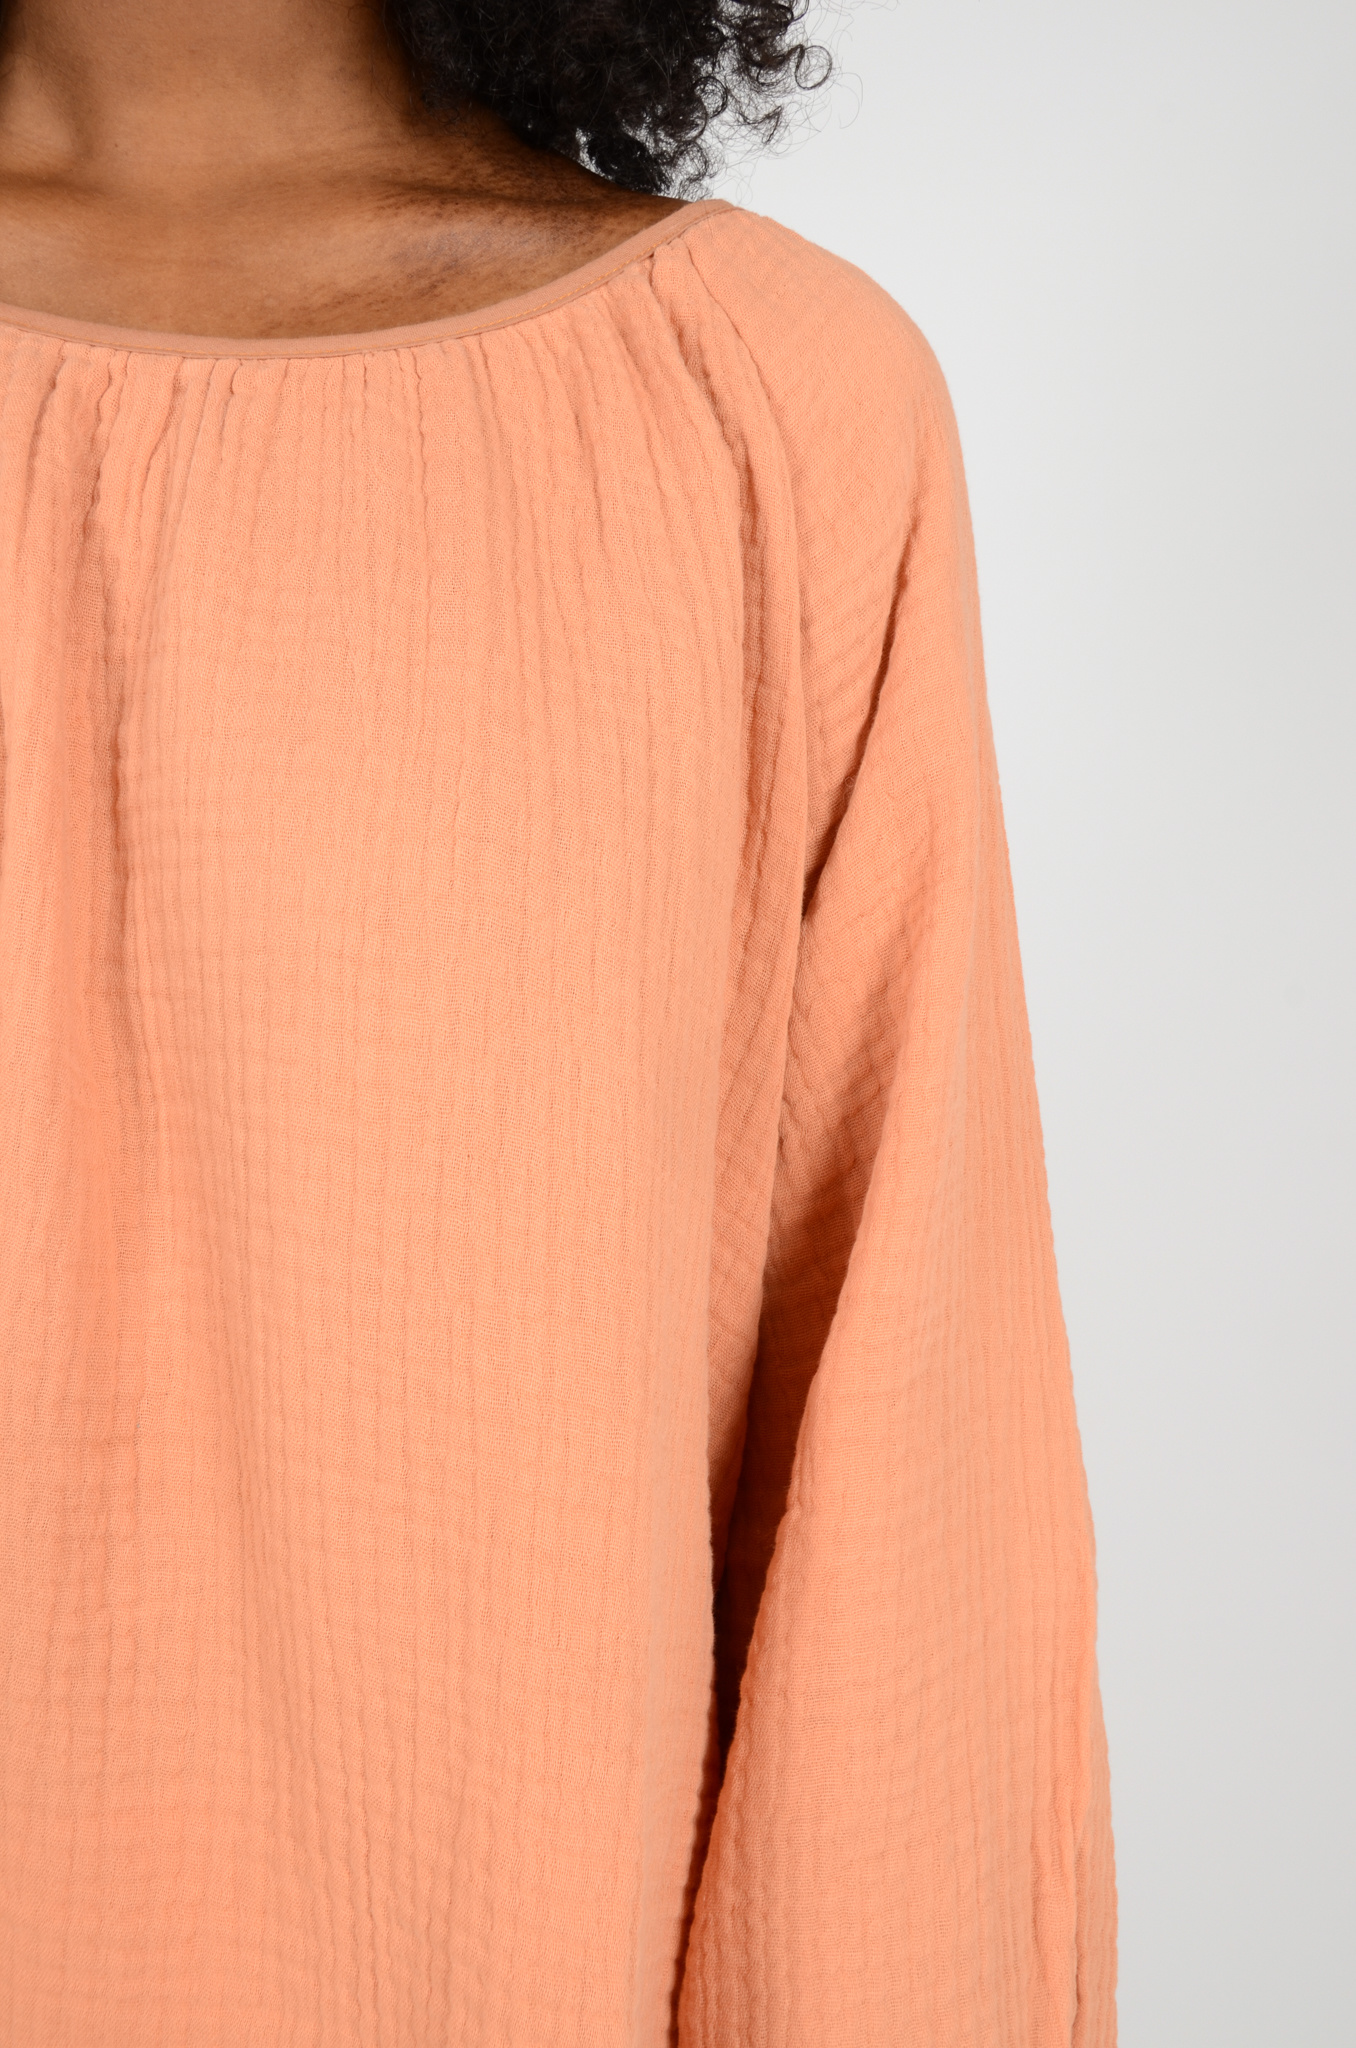 MORNING BLOUSE IN PEACH-6